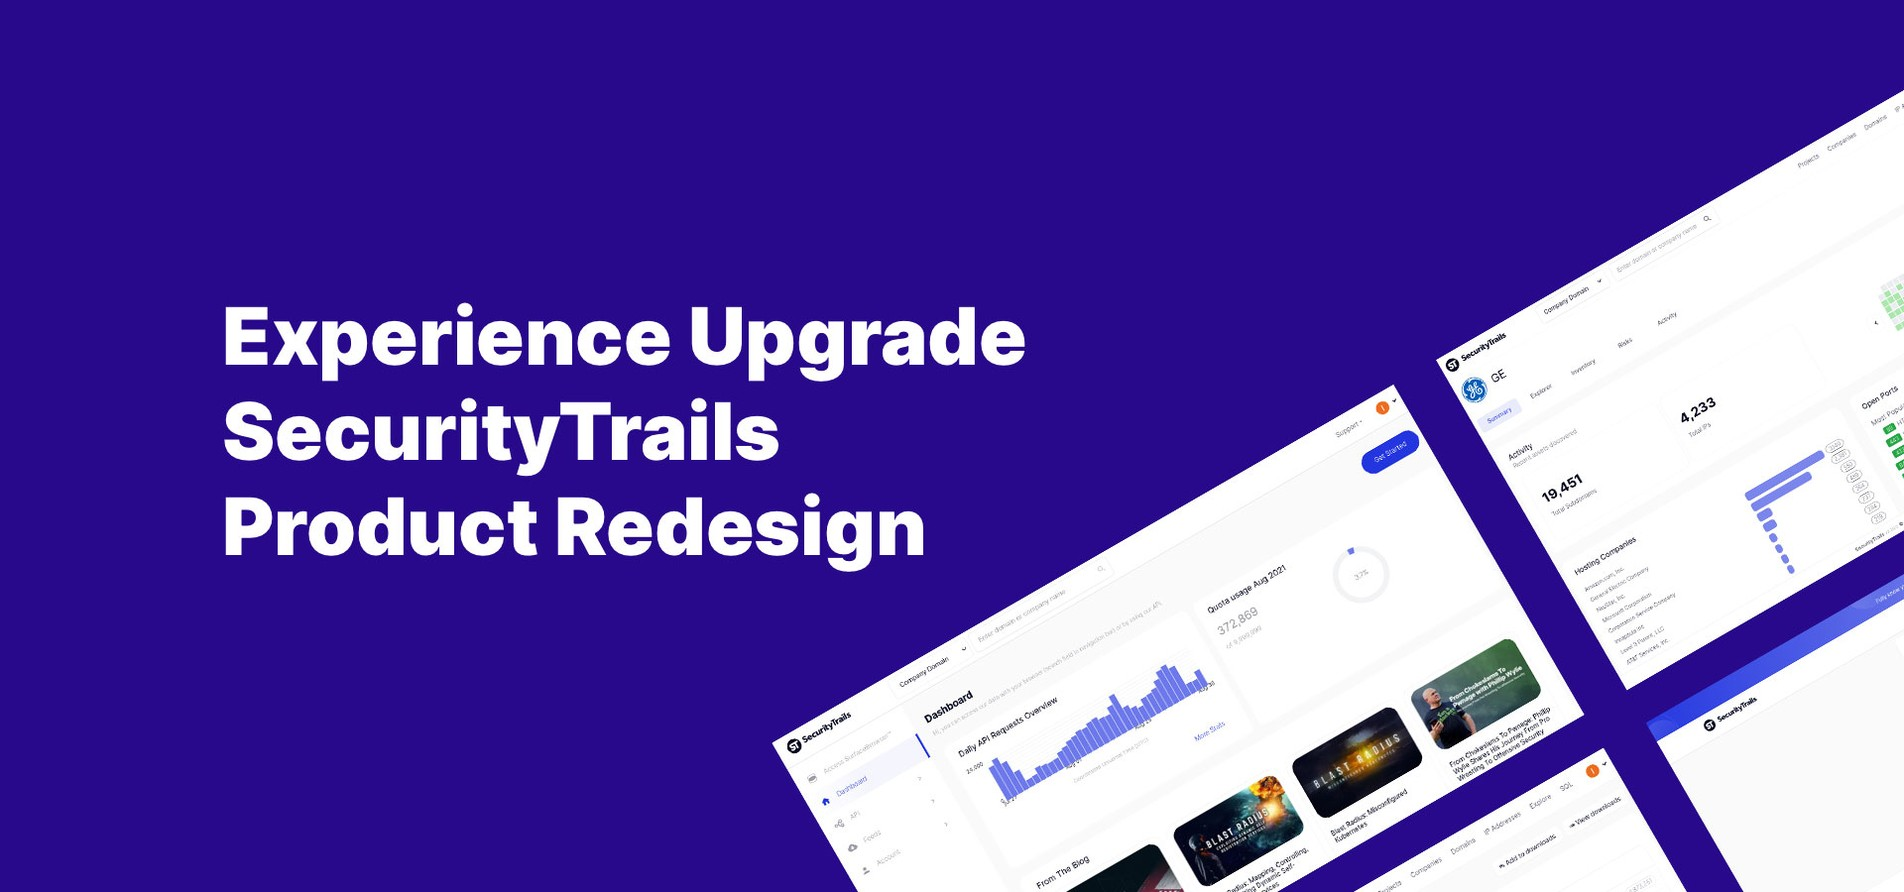 Experience Upgrade: SecurityTrails Product Redesign.